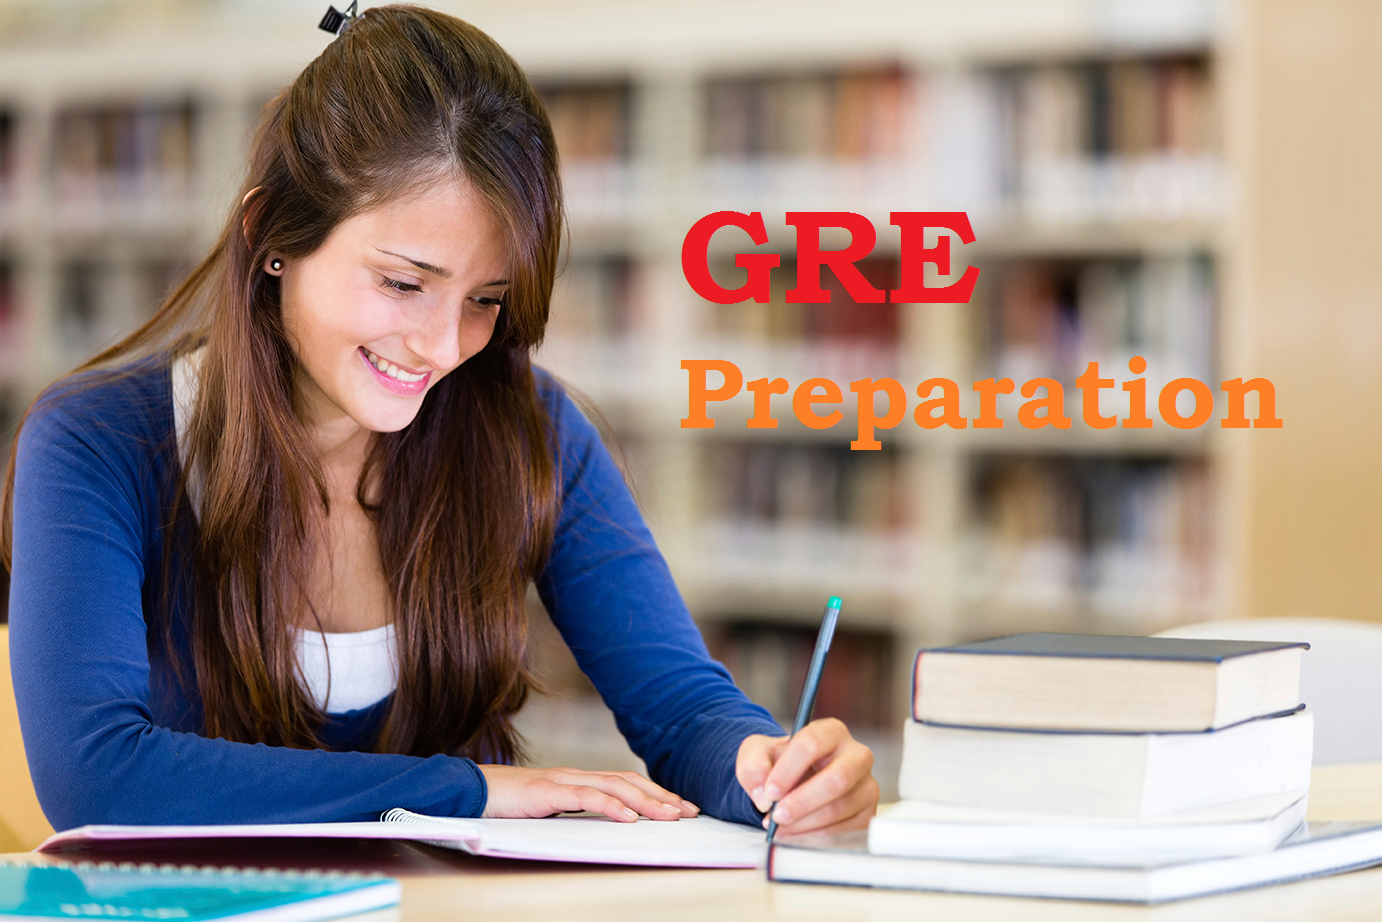 Best Essay Writing Service 2021 Know more about the GRE Quantitative Syllabus and exam patterns